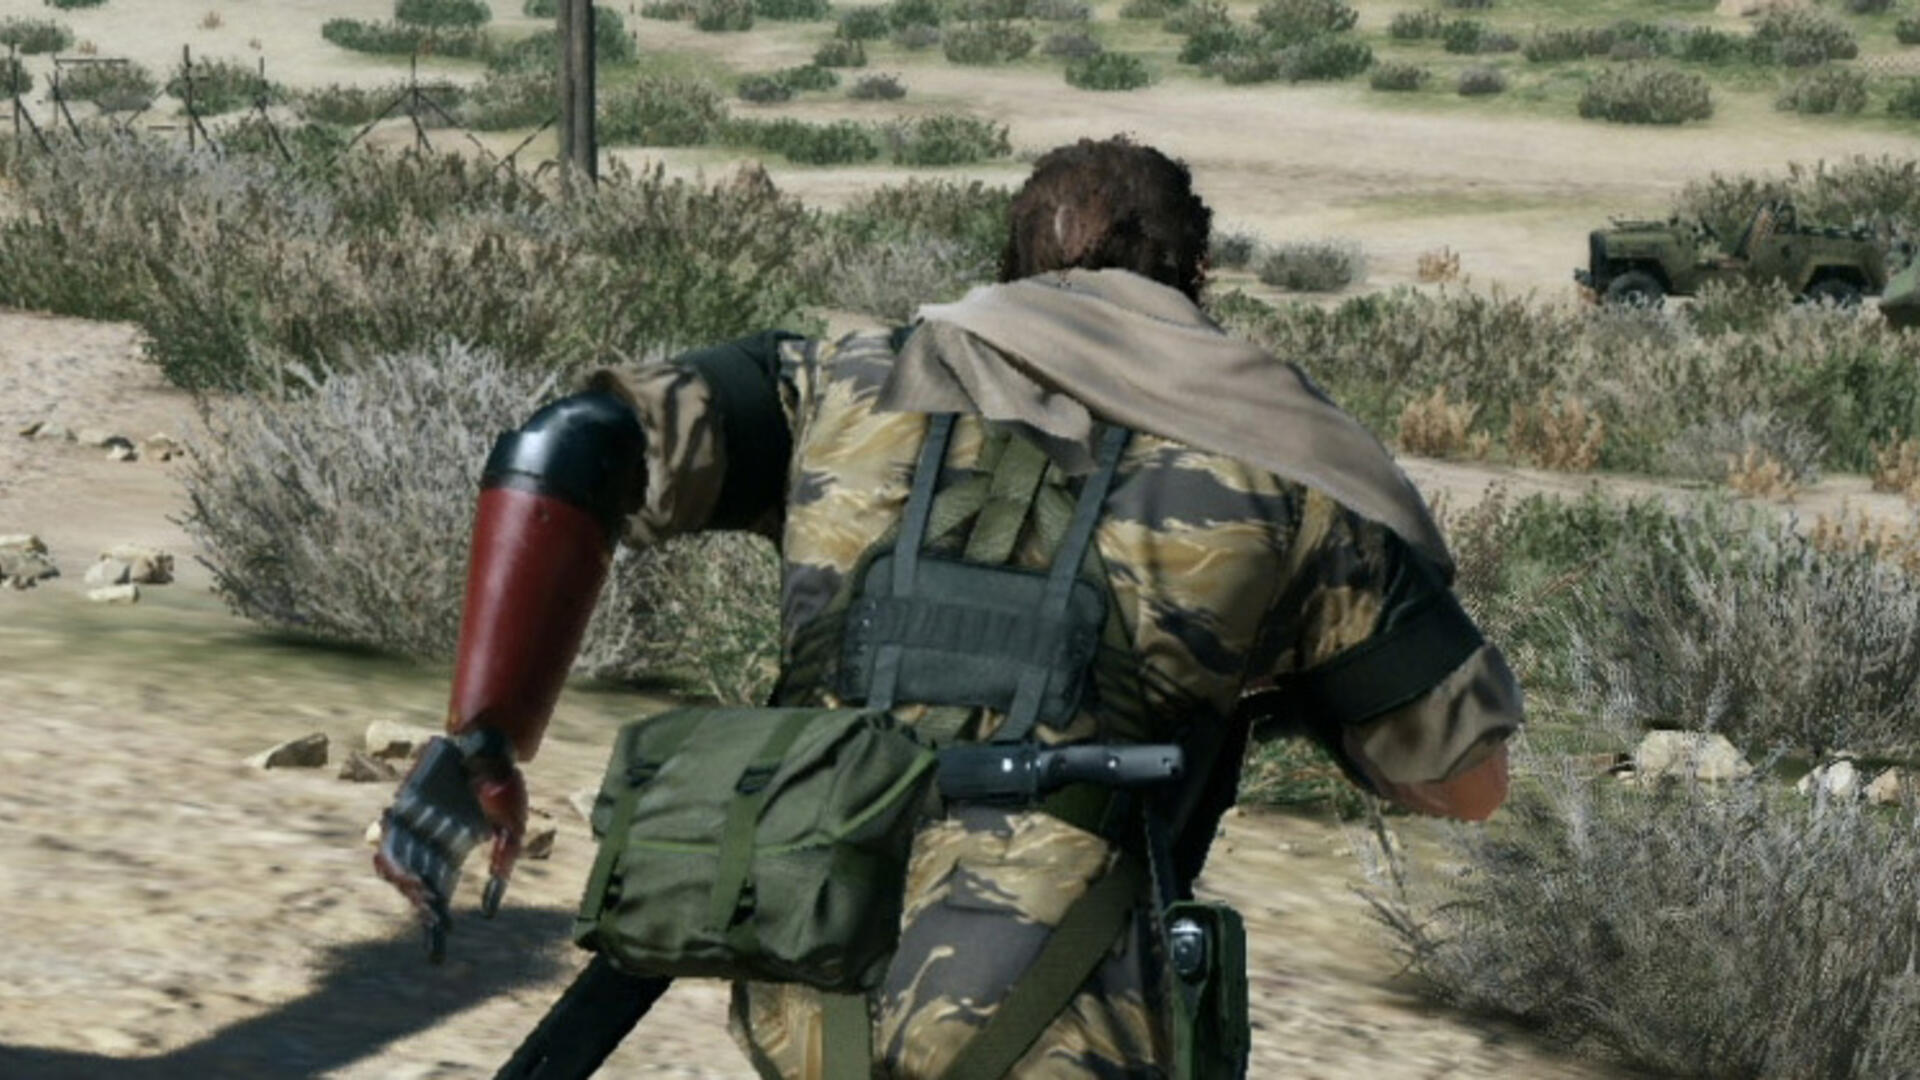 Metal Gear Solid 5 - Red Brass Mission Guide - Mission 7 - How to get an S Rank